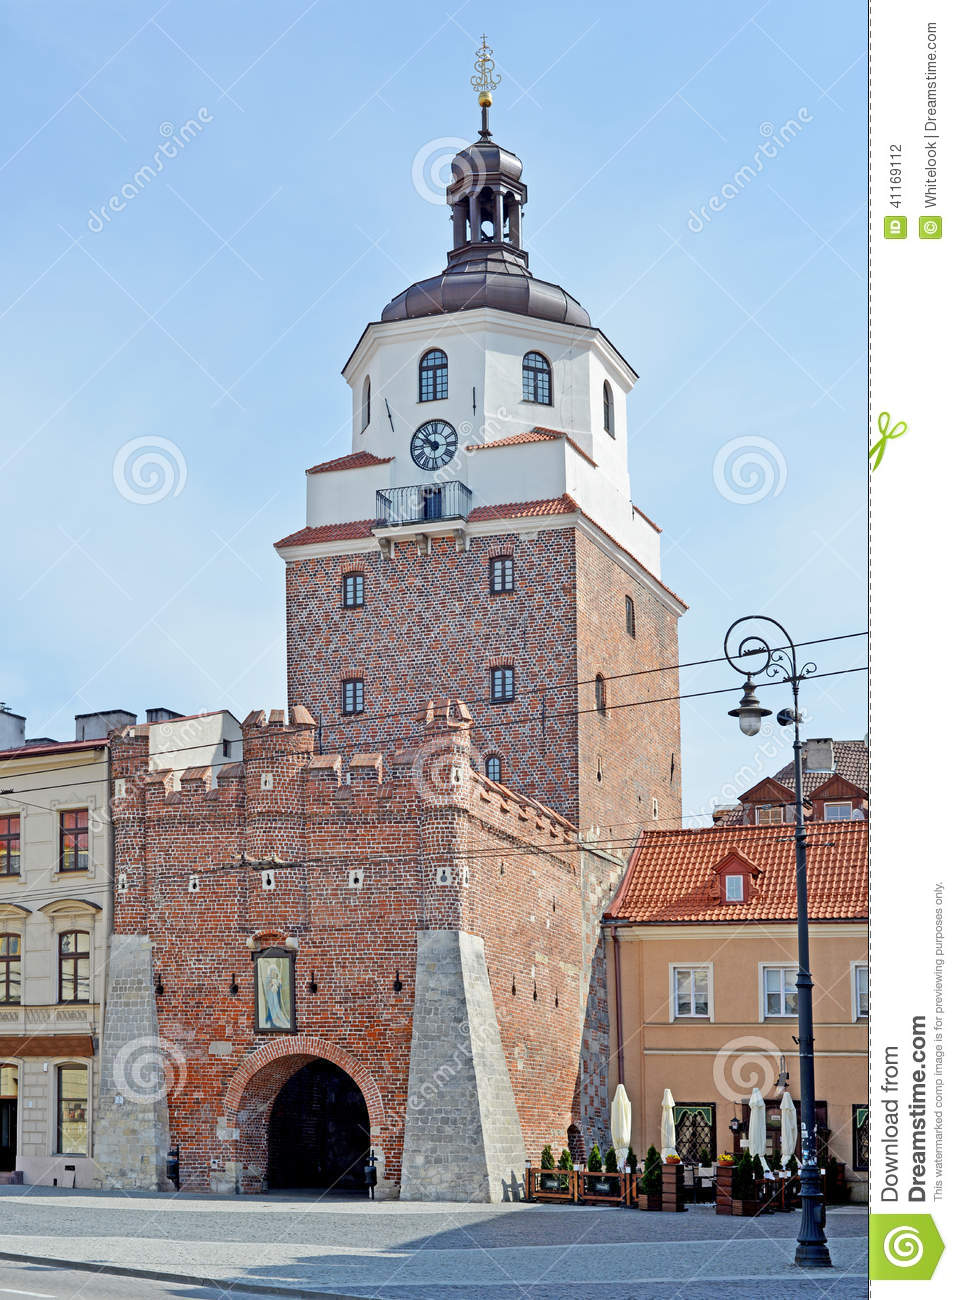 Cracow Gate In Lublin, Poland Stock Photo.